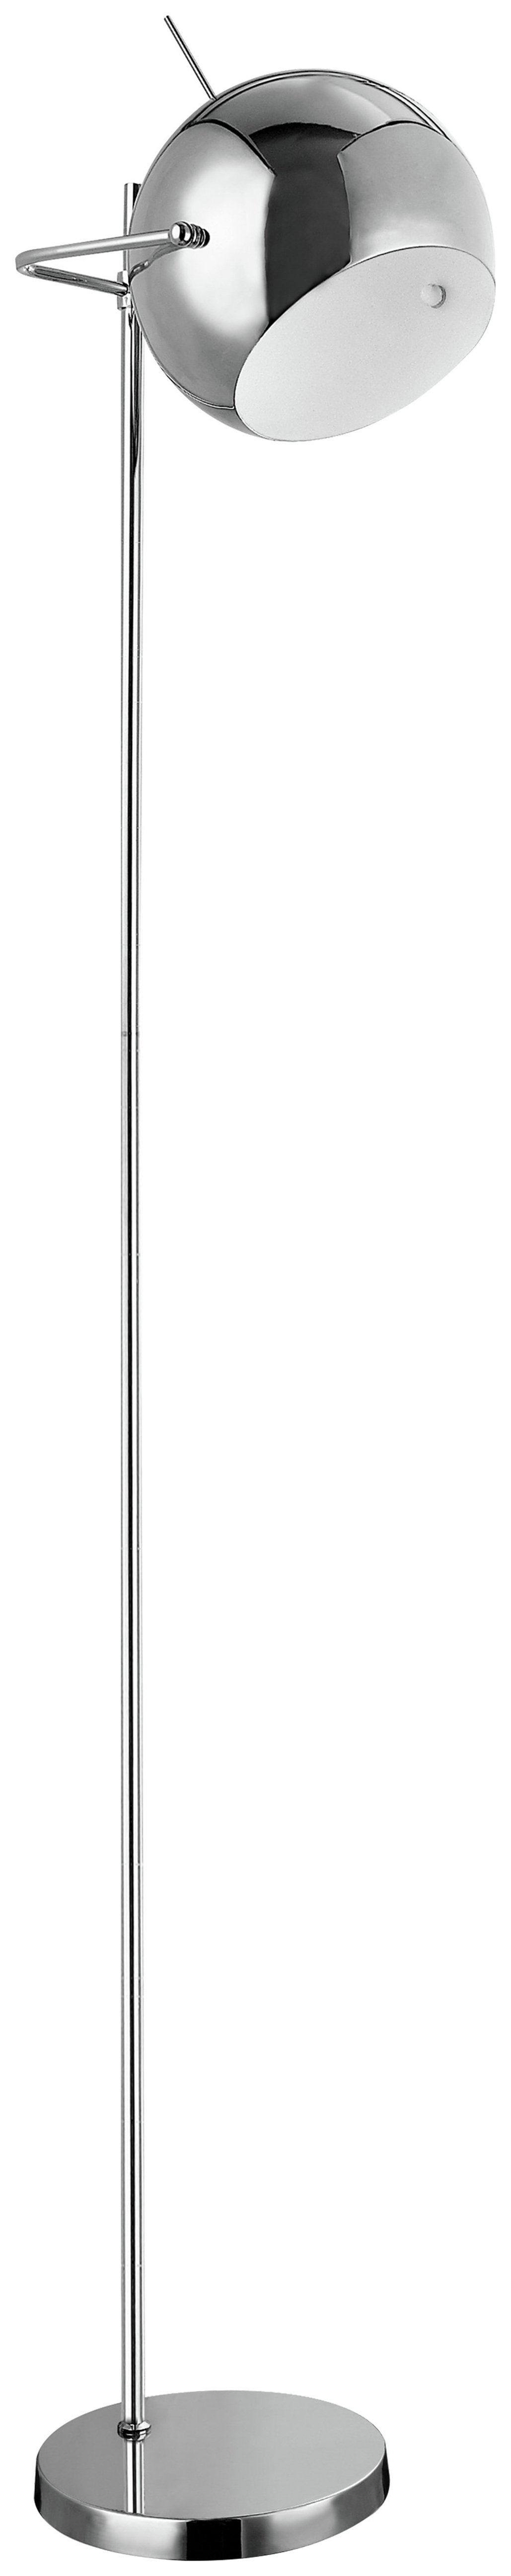 Image of Chrome & White Floor Lamp